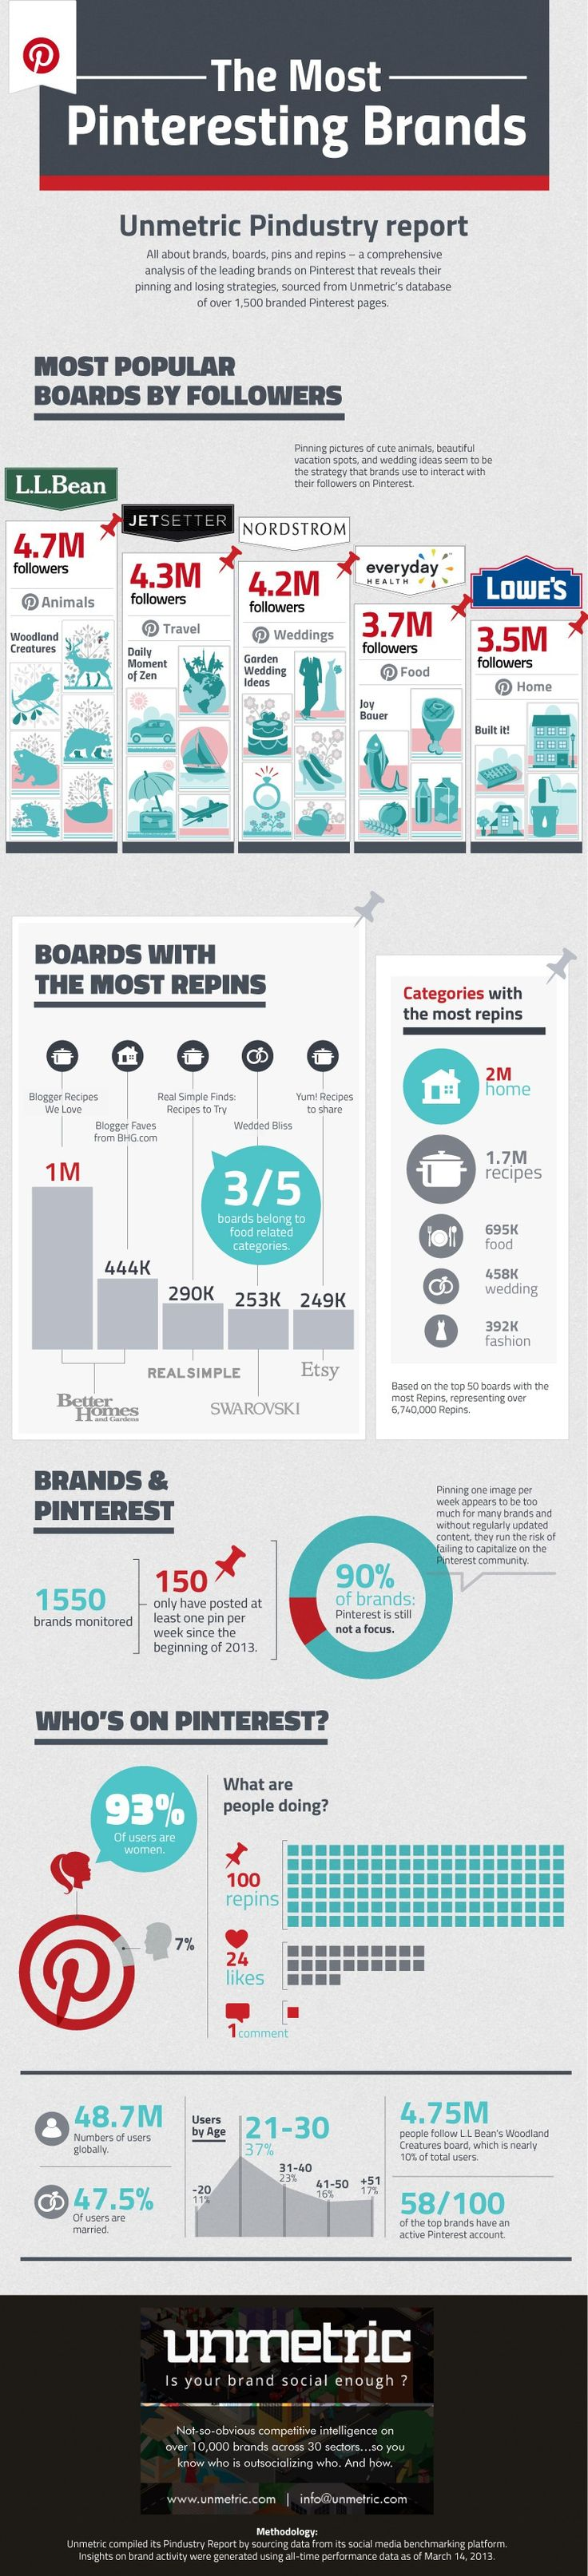 The Most Pinteresting Brands